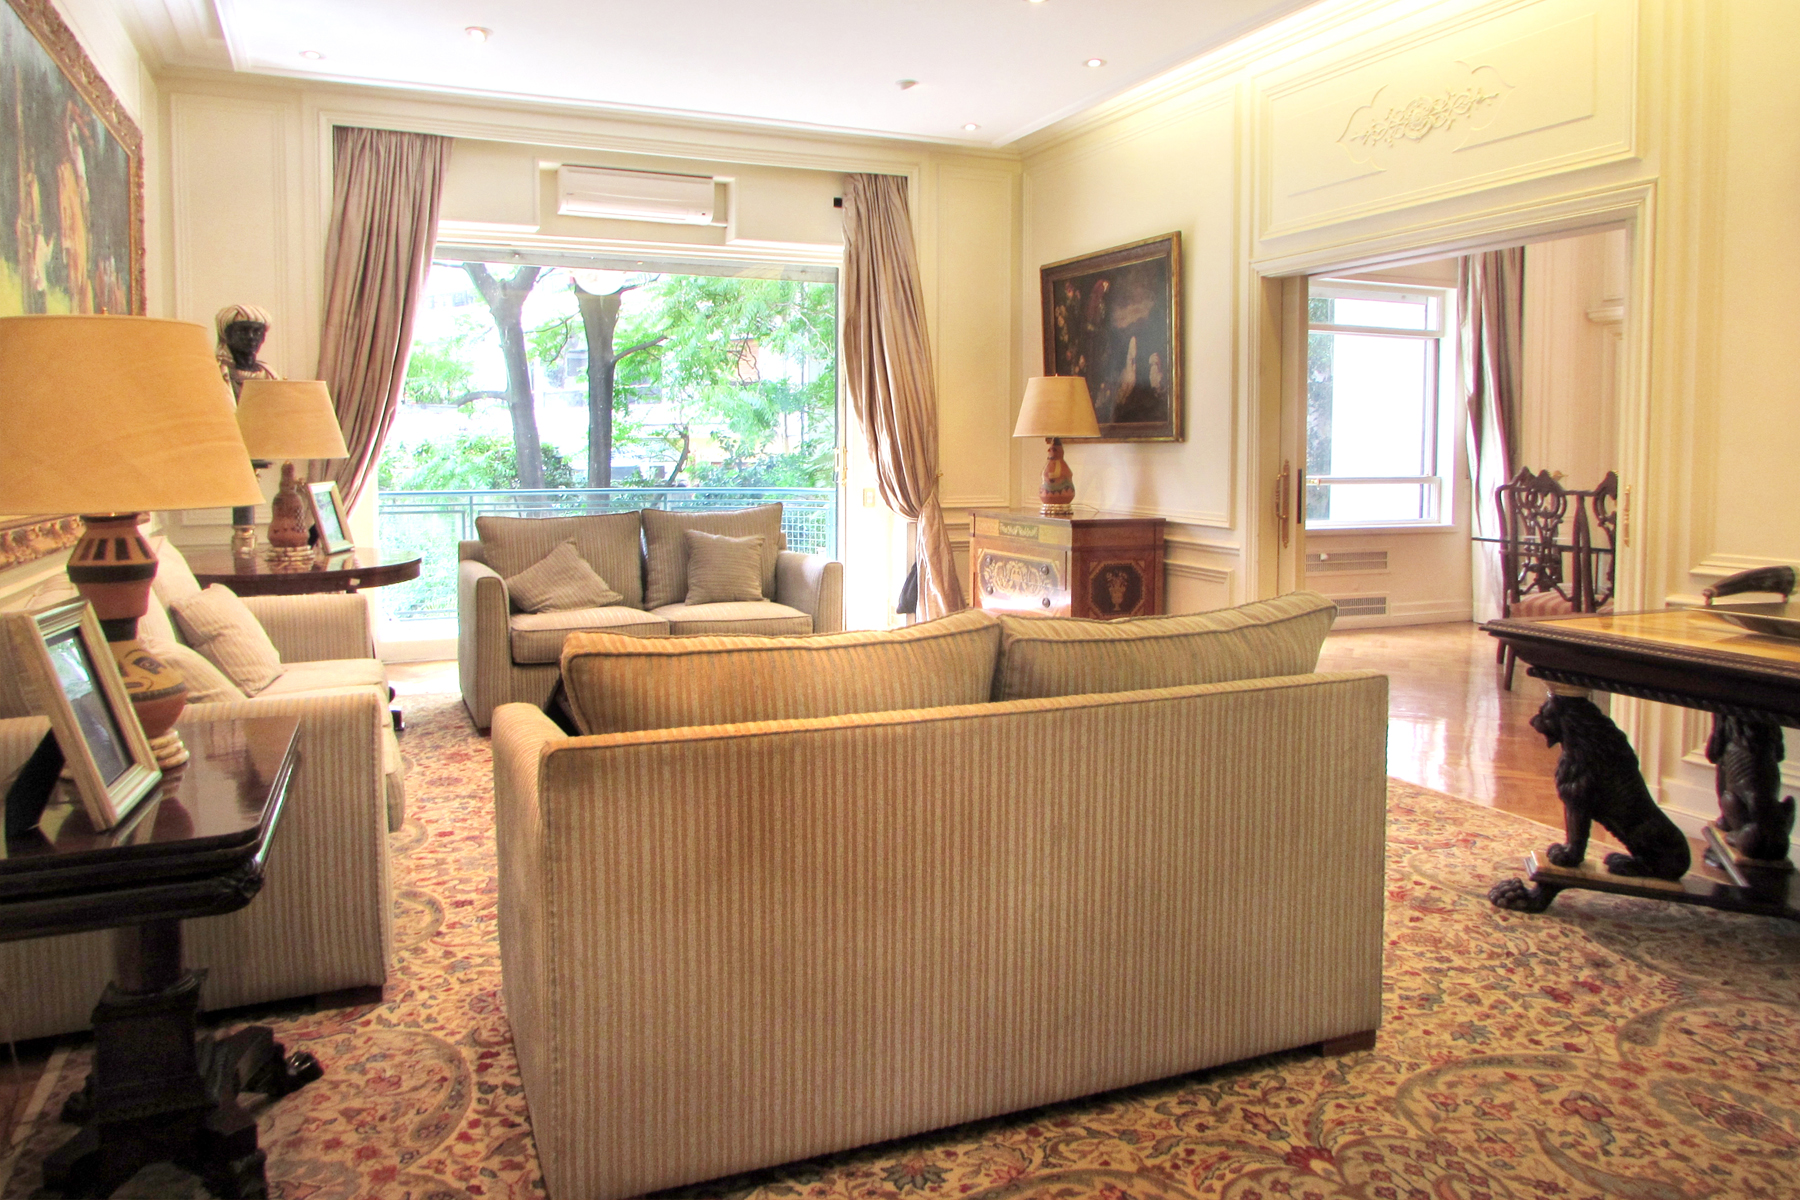 Single Family Home for sale in Av. Alvear 1400, Buenos Aires, Buenos Aires   , Argentina